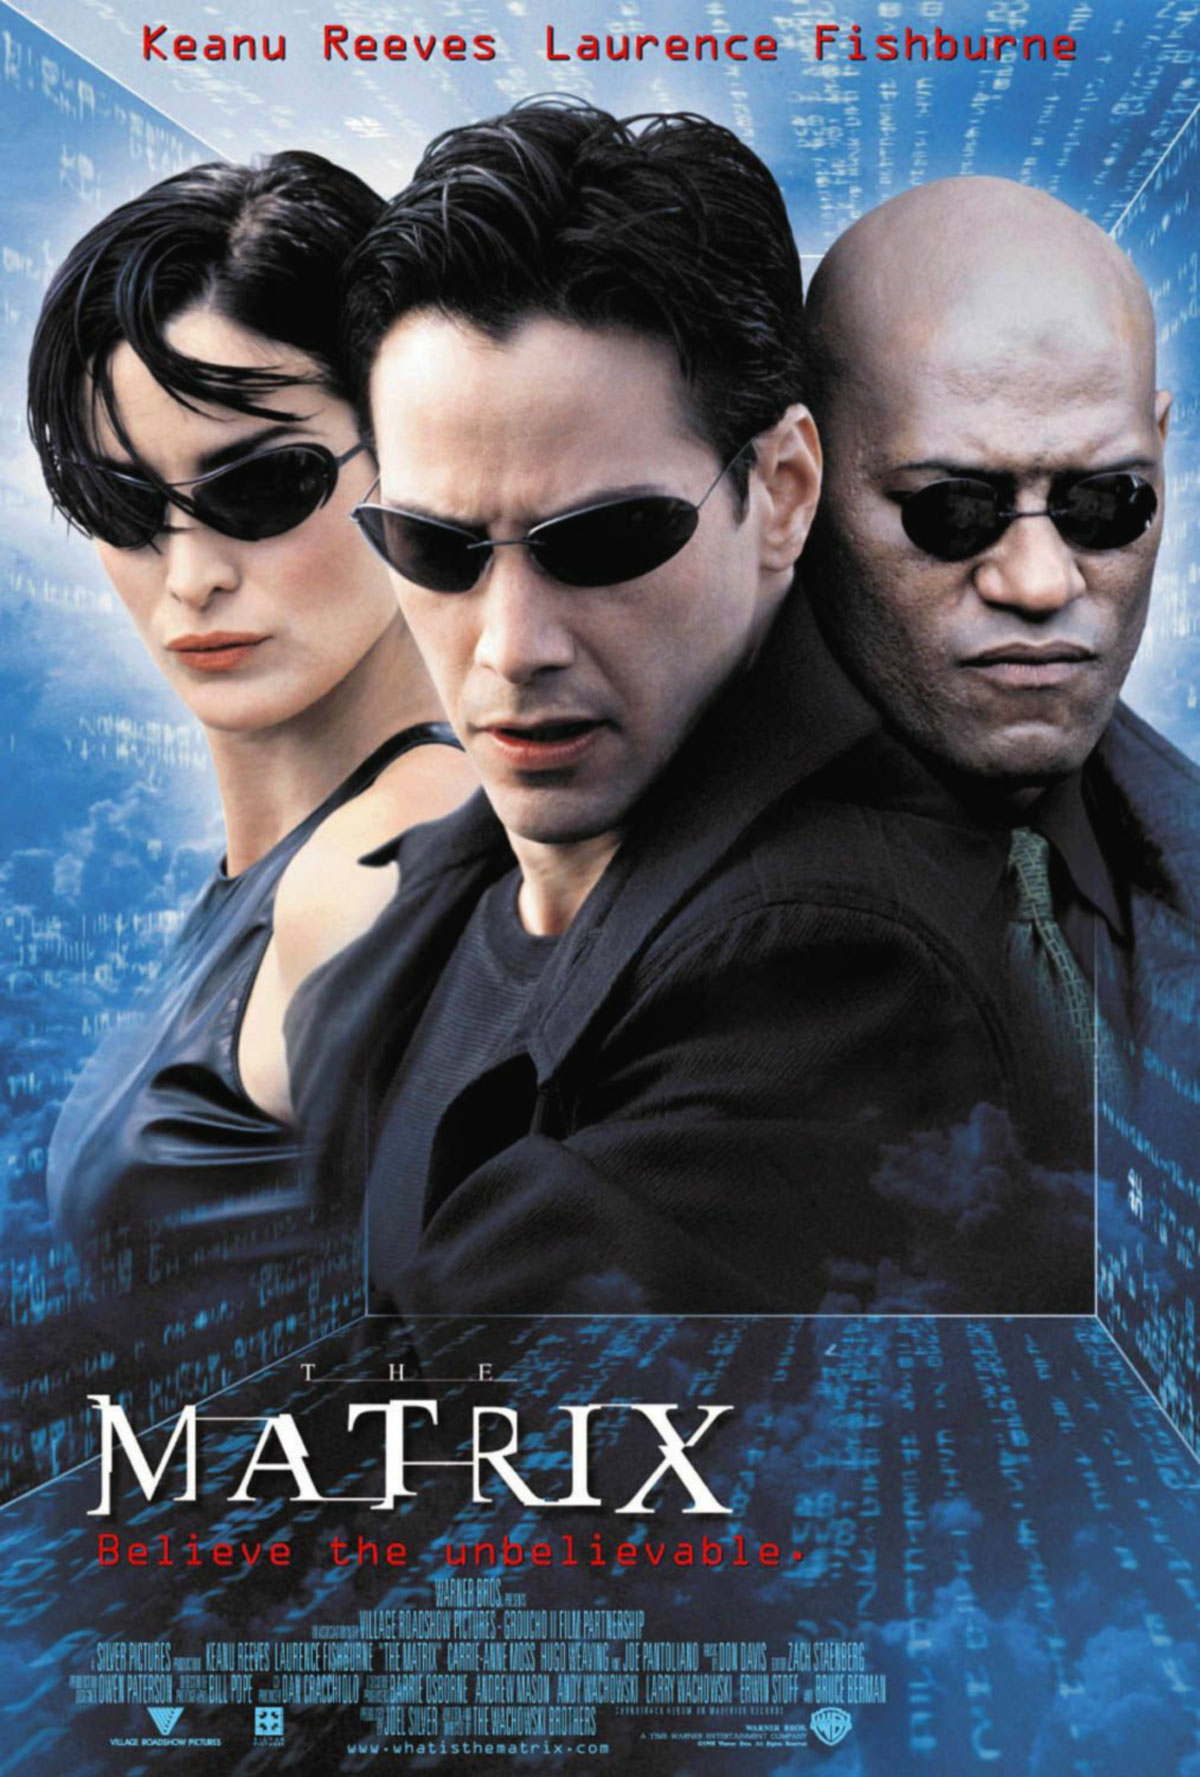 Favorito Frasi del film Matrix MC84